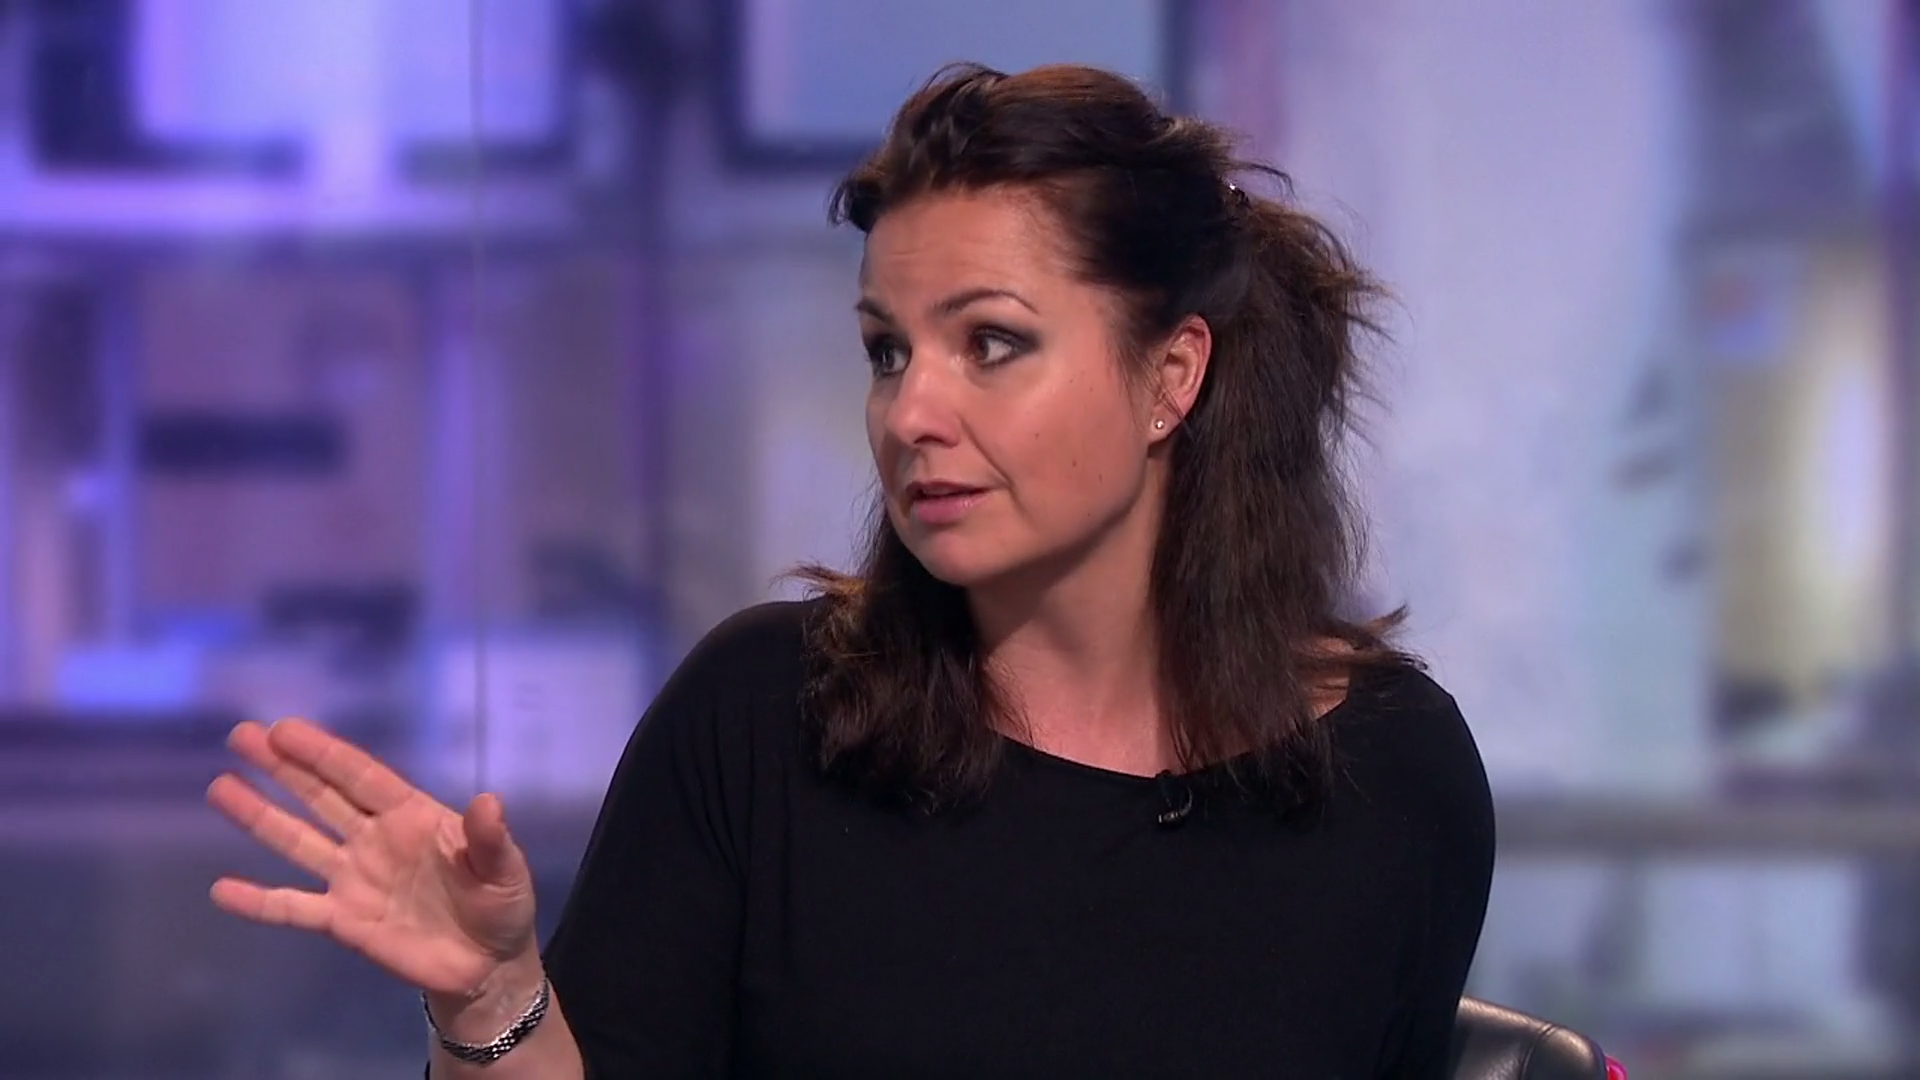 'People will lend their vote in Brexit election', says former MP Heidi Allen – Channel 4 News